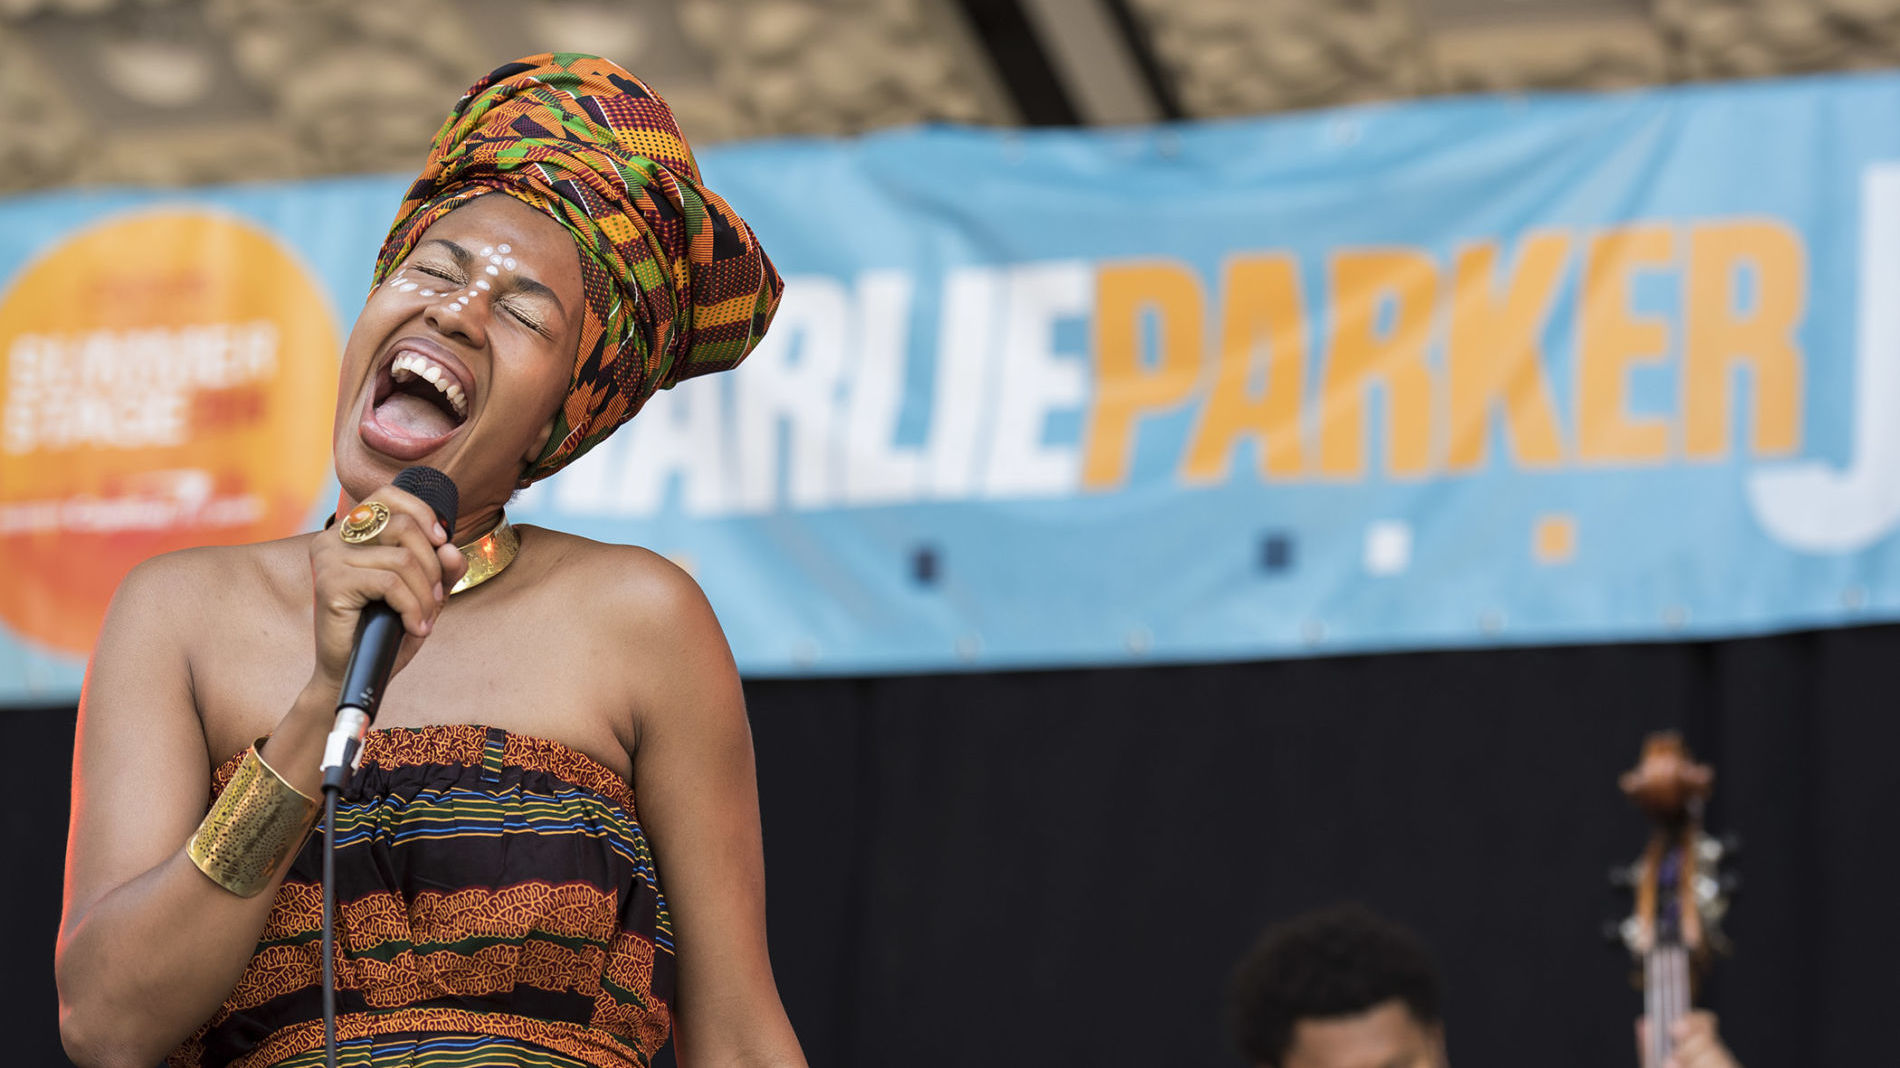 Jazzmeia Horn performs at the 24th Annual Charlie Parker Jazz Festival in Marcus Garvey Park in 2016.